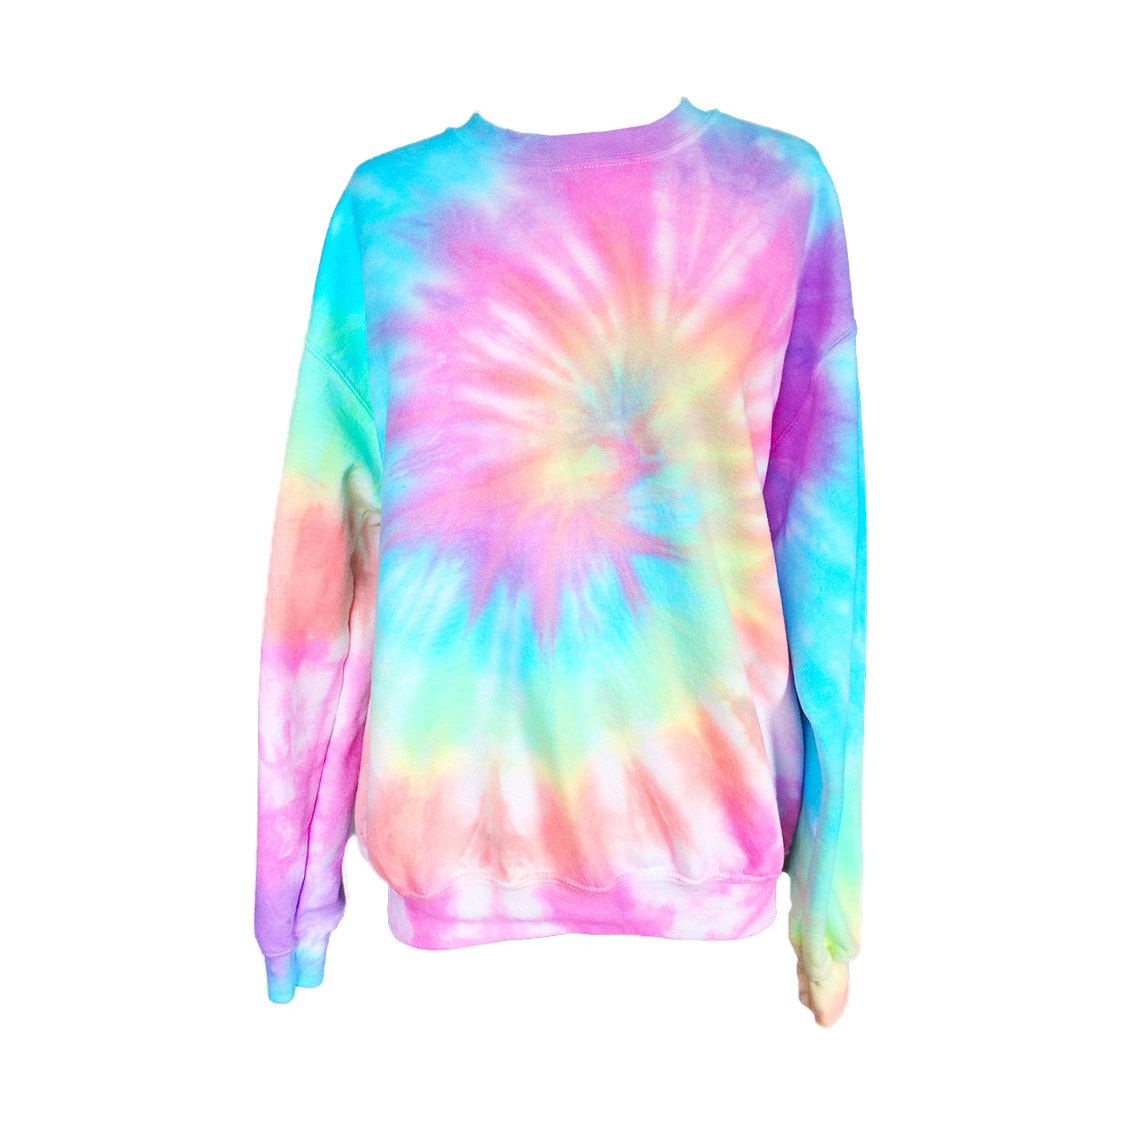 8b55ad4669d34 Pin by Alexandra Trachsler on Long sleeve shirts | Pastel tie dye ...